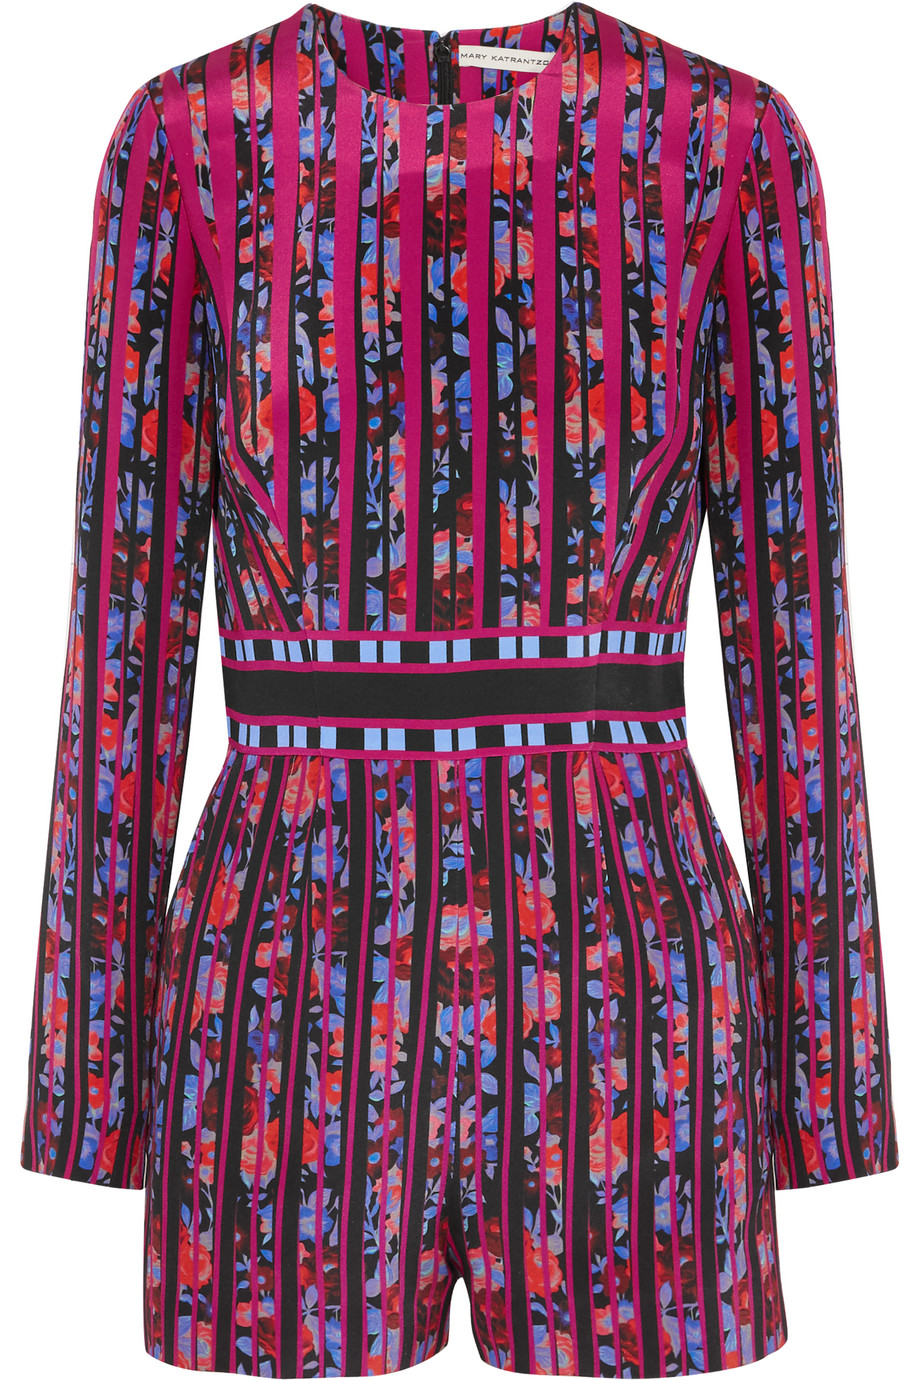 Mary Katrantzou Poppies Printed Silk-Crepe Playsuit, Fuchsia/Purple, Women's, Size: 8